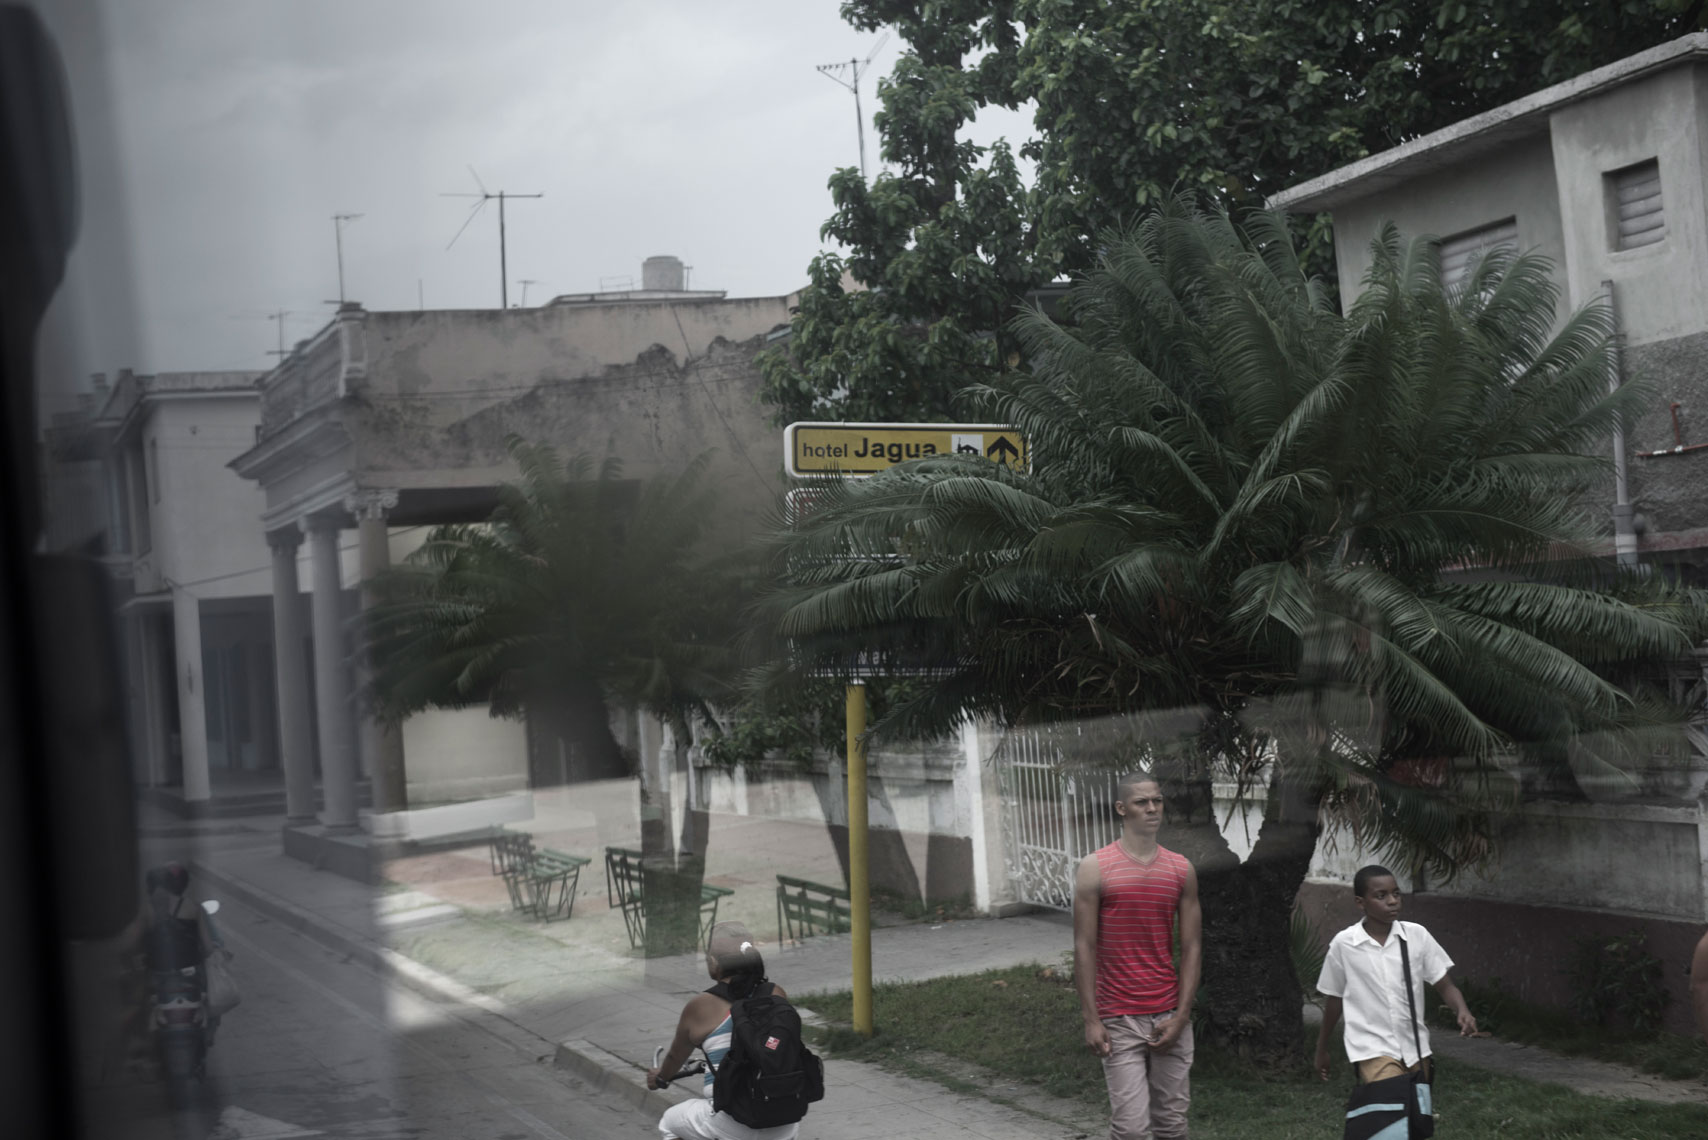 bus-ride-in-cuba_20150611_2-(4)